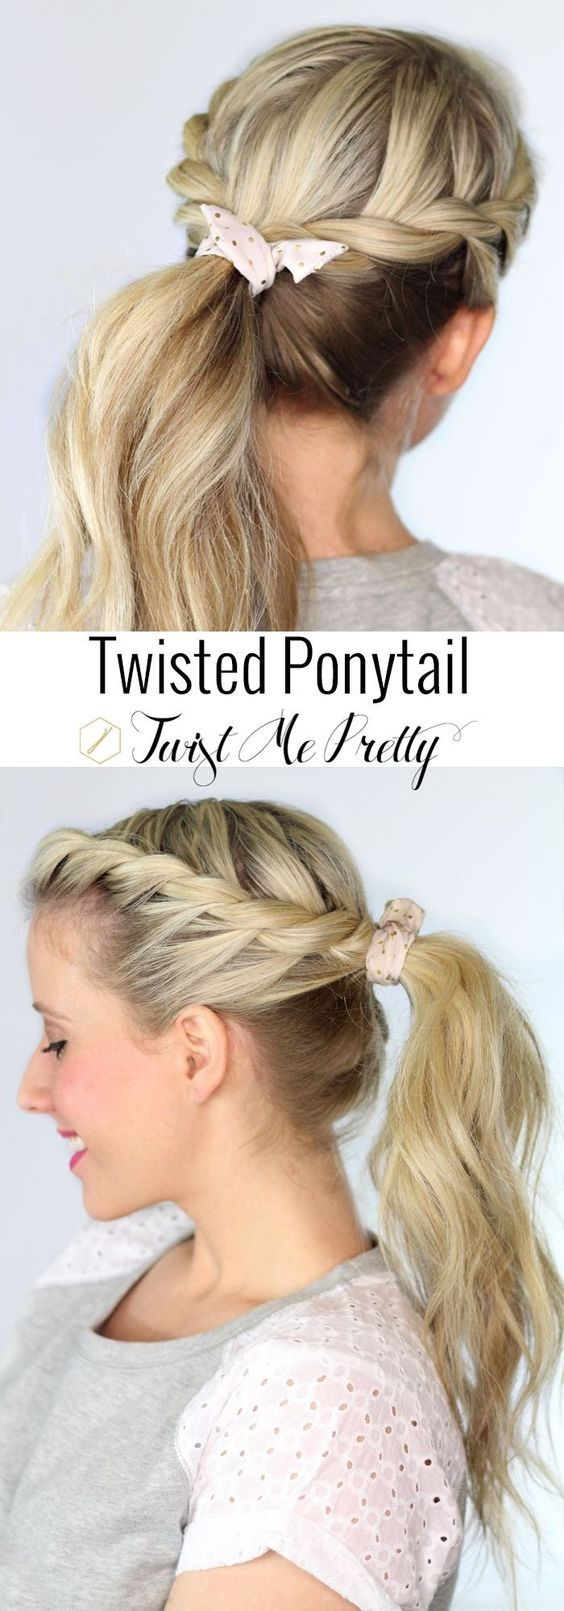 12 cute and easy hairstyles for school 2018 | hairstyles